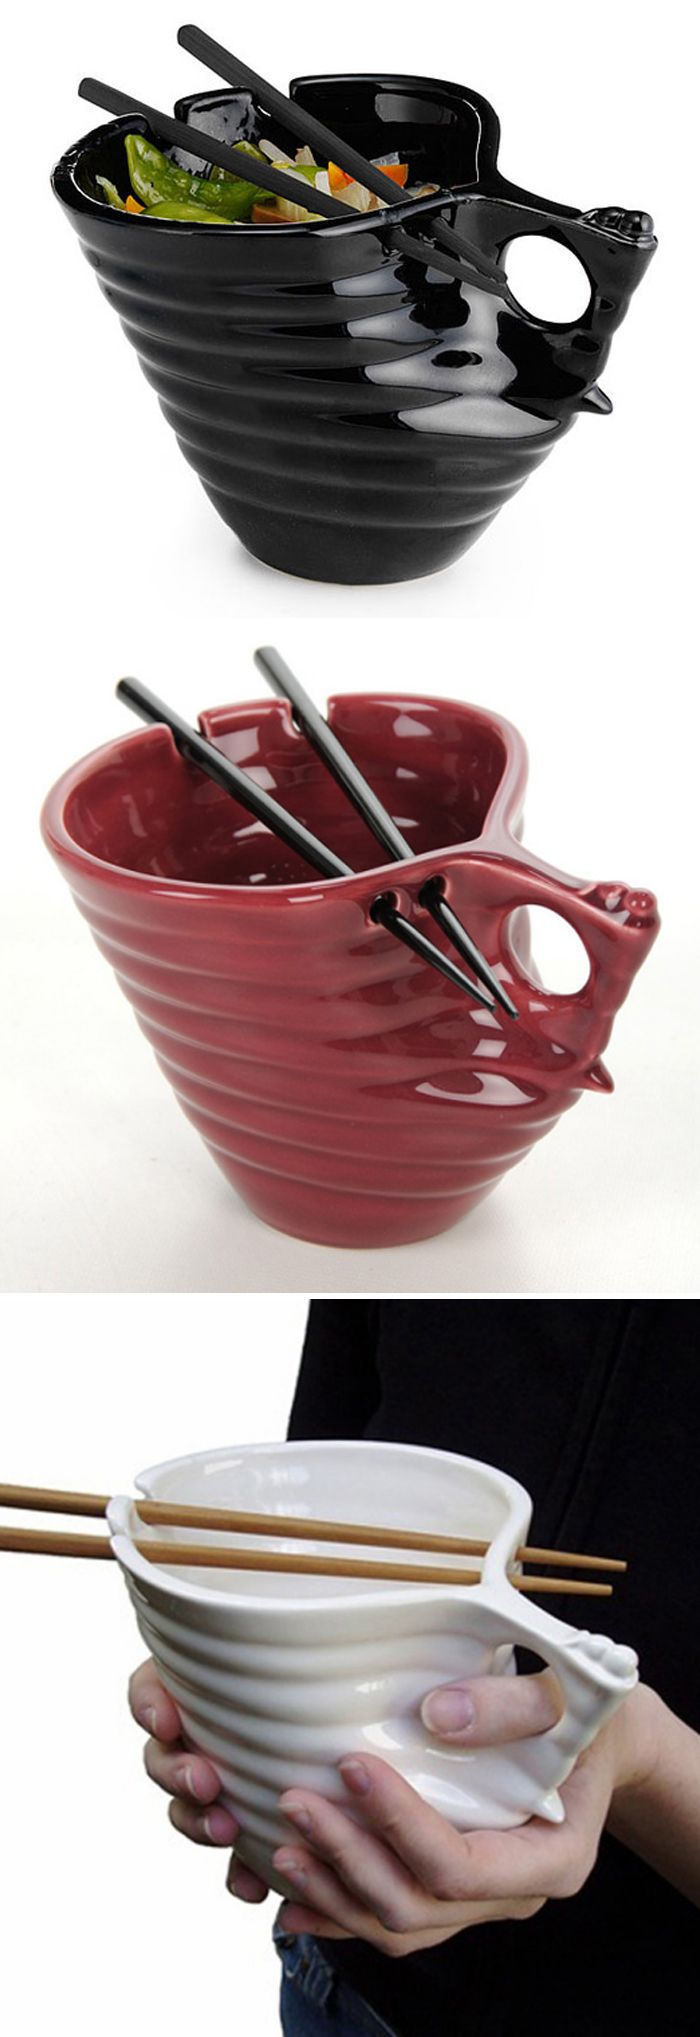 Ramen and udon noodle bowl--fits perfectly in your hands, with a built-in chopstick holder